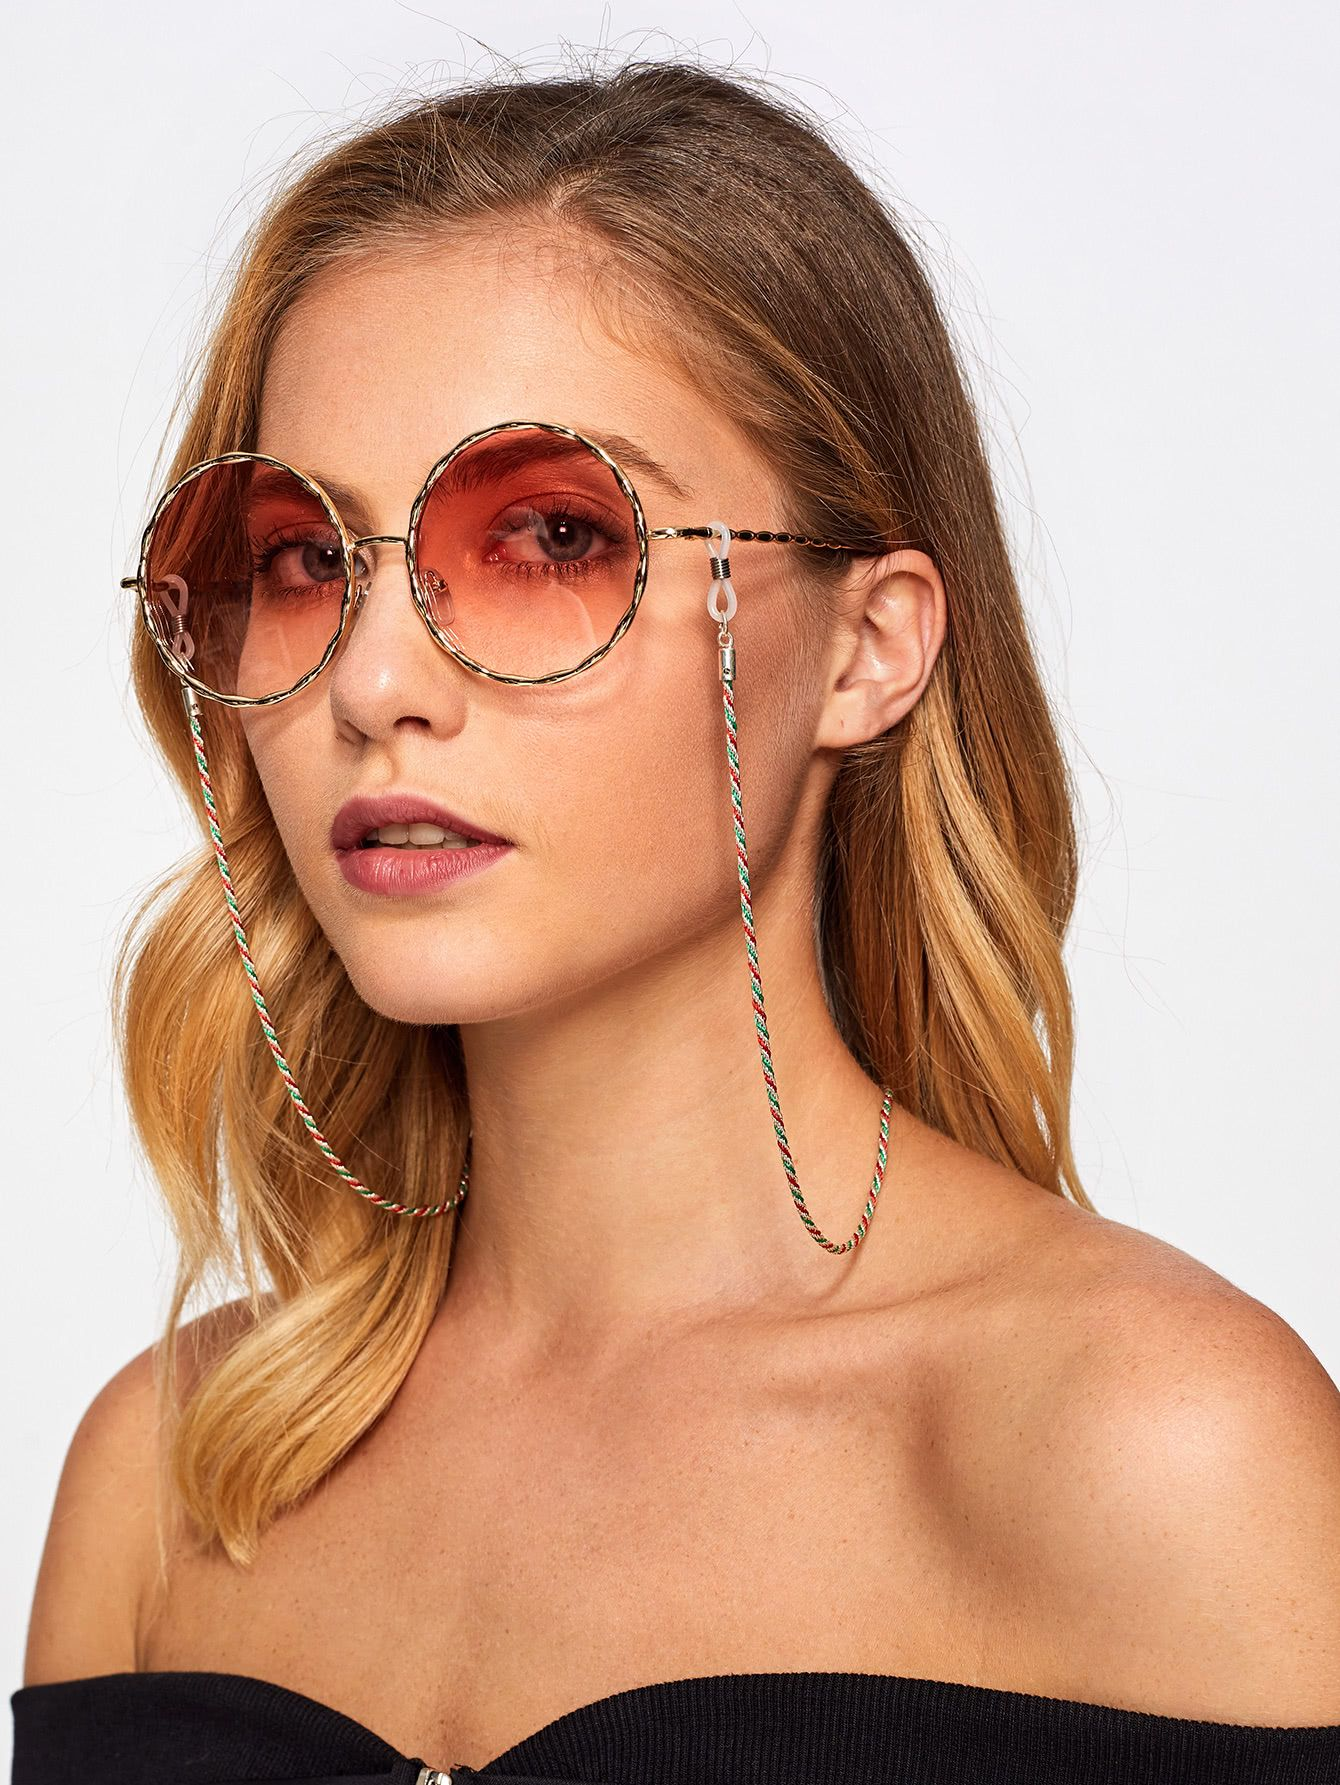 854a2c68e Three Color Glasses Chain in 2019 | Causal Outfit Inspiration ...